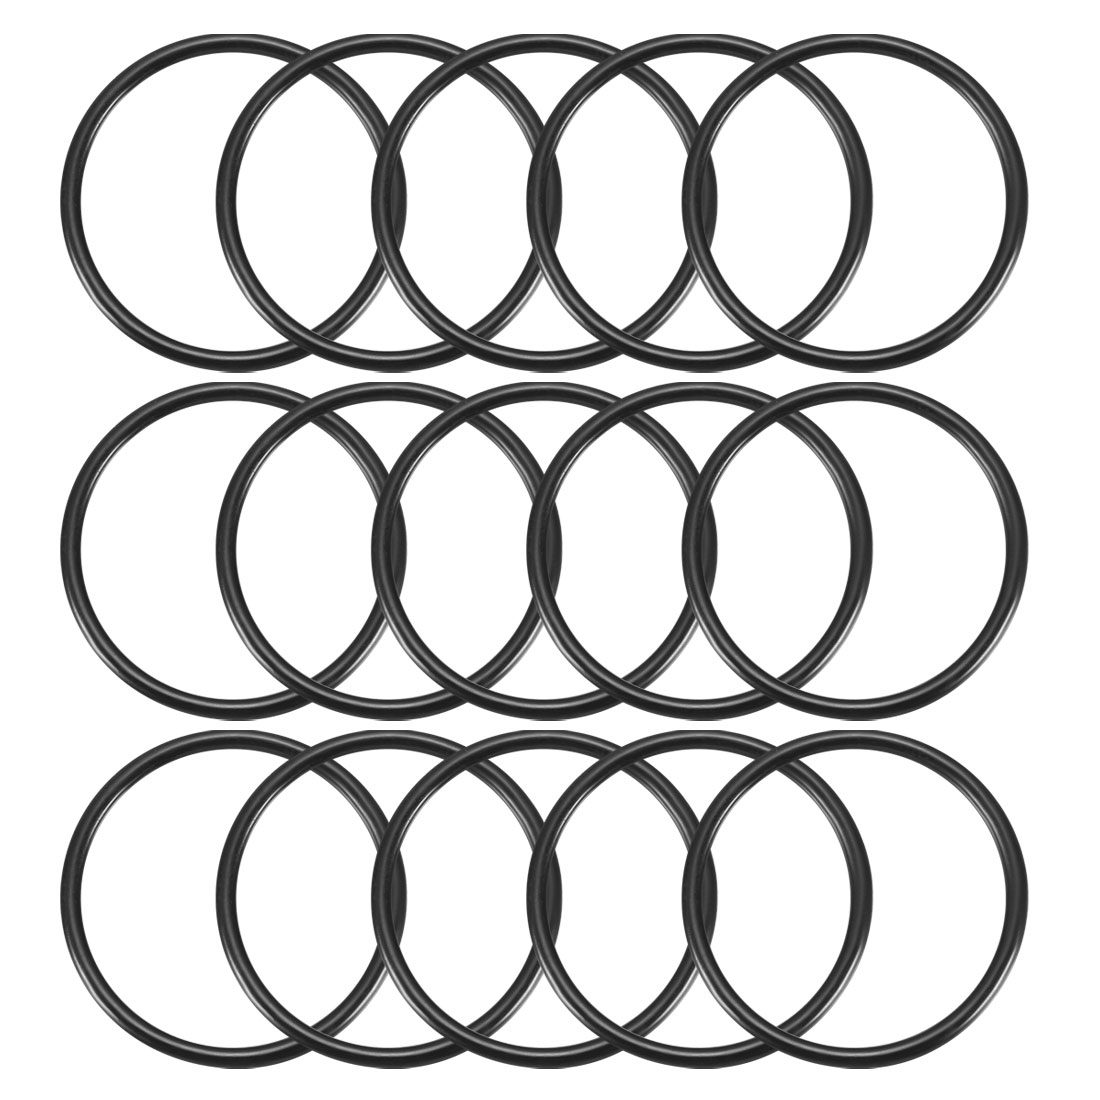 15Pcs Black 30mm Dia 2mm Thickness Nitrile Rubber O Ring NBR Sealing Grommets